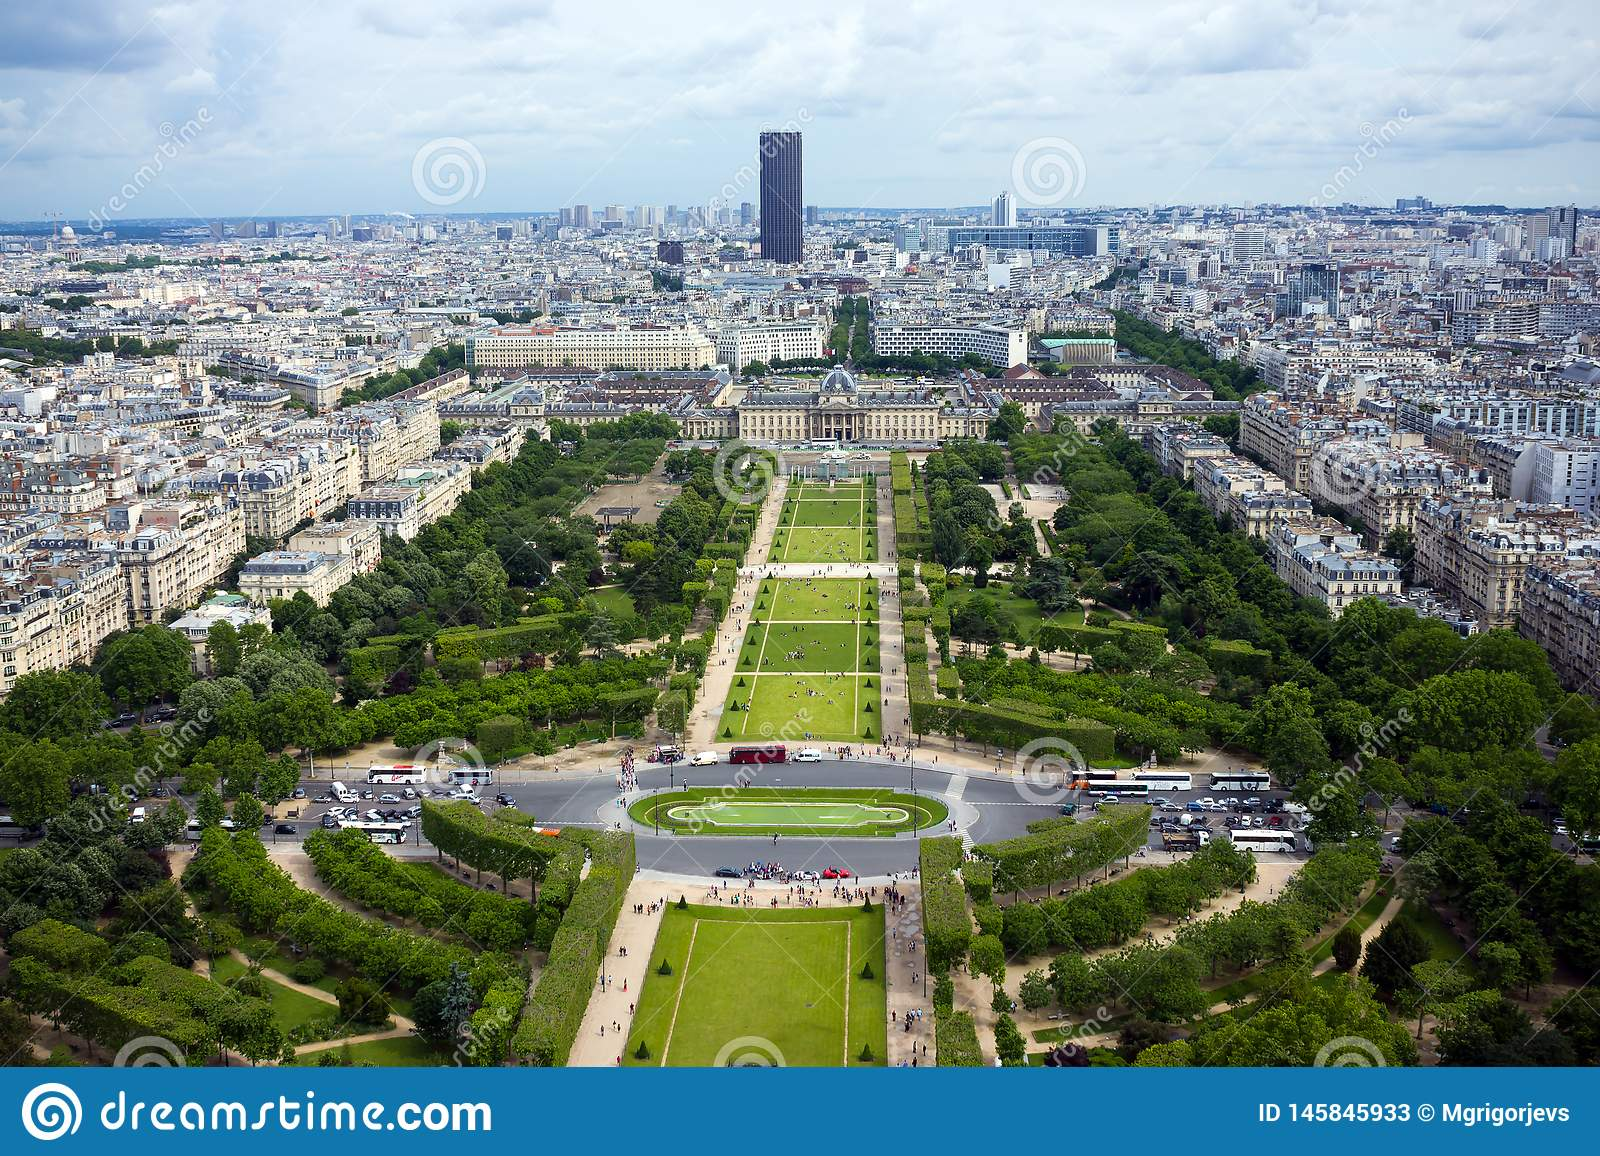 Aerial view on Mars fields and the Montparnasse building from Eiffel Tower in Paris, France, June 25, 2013.